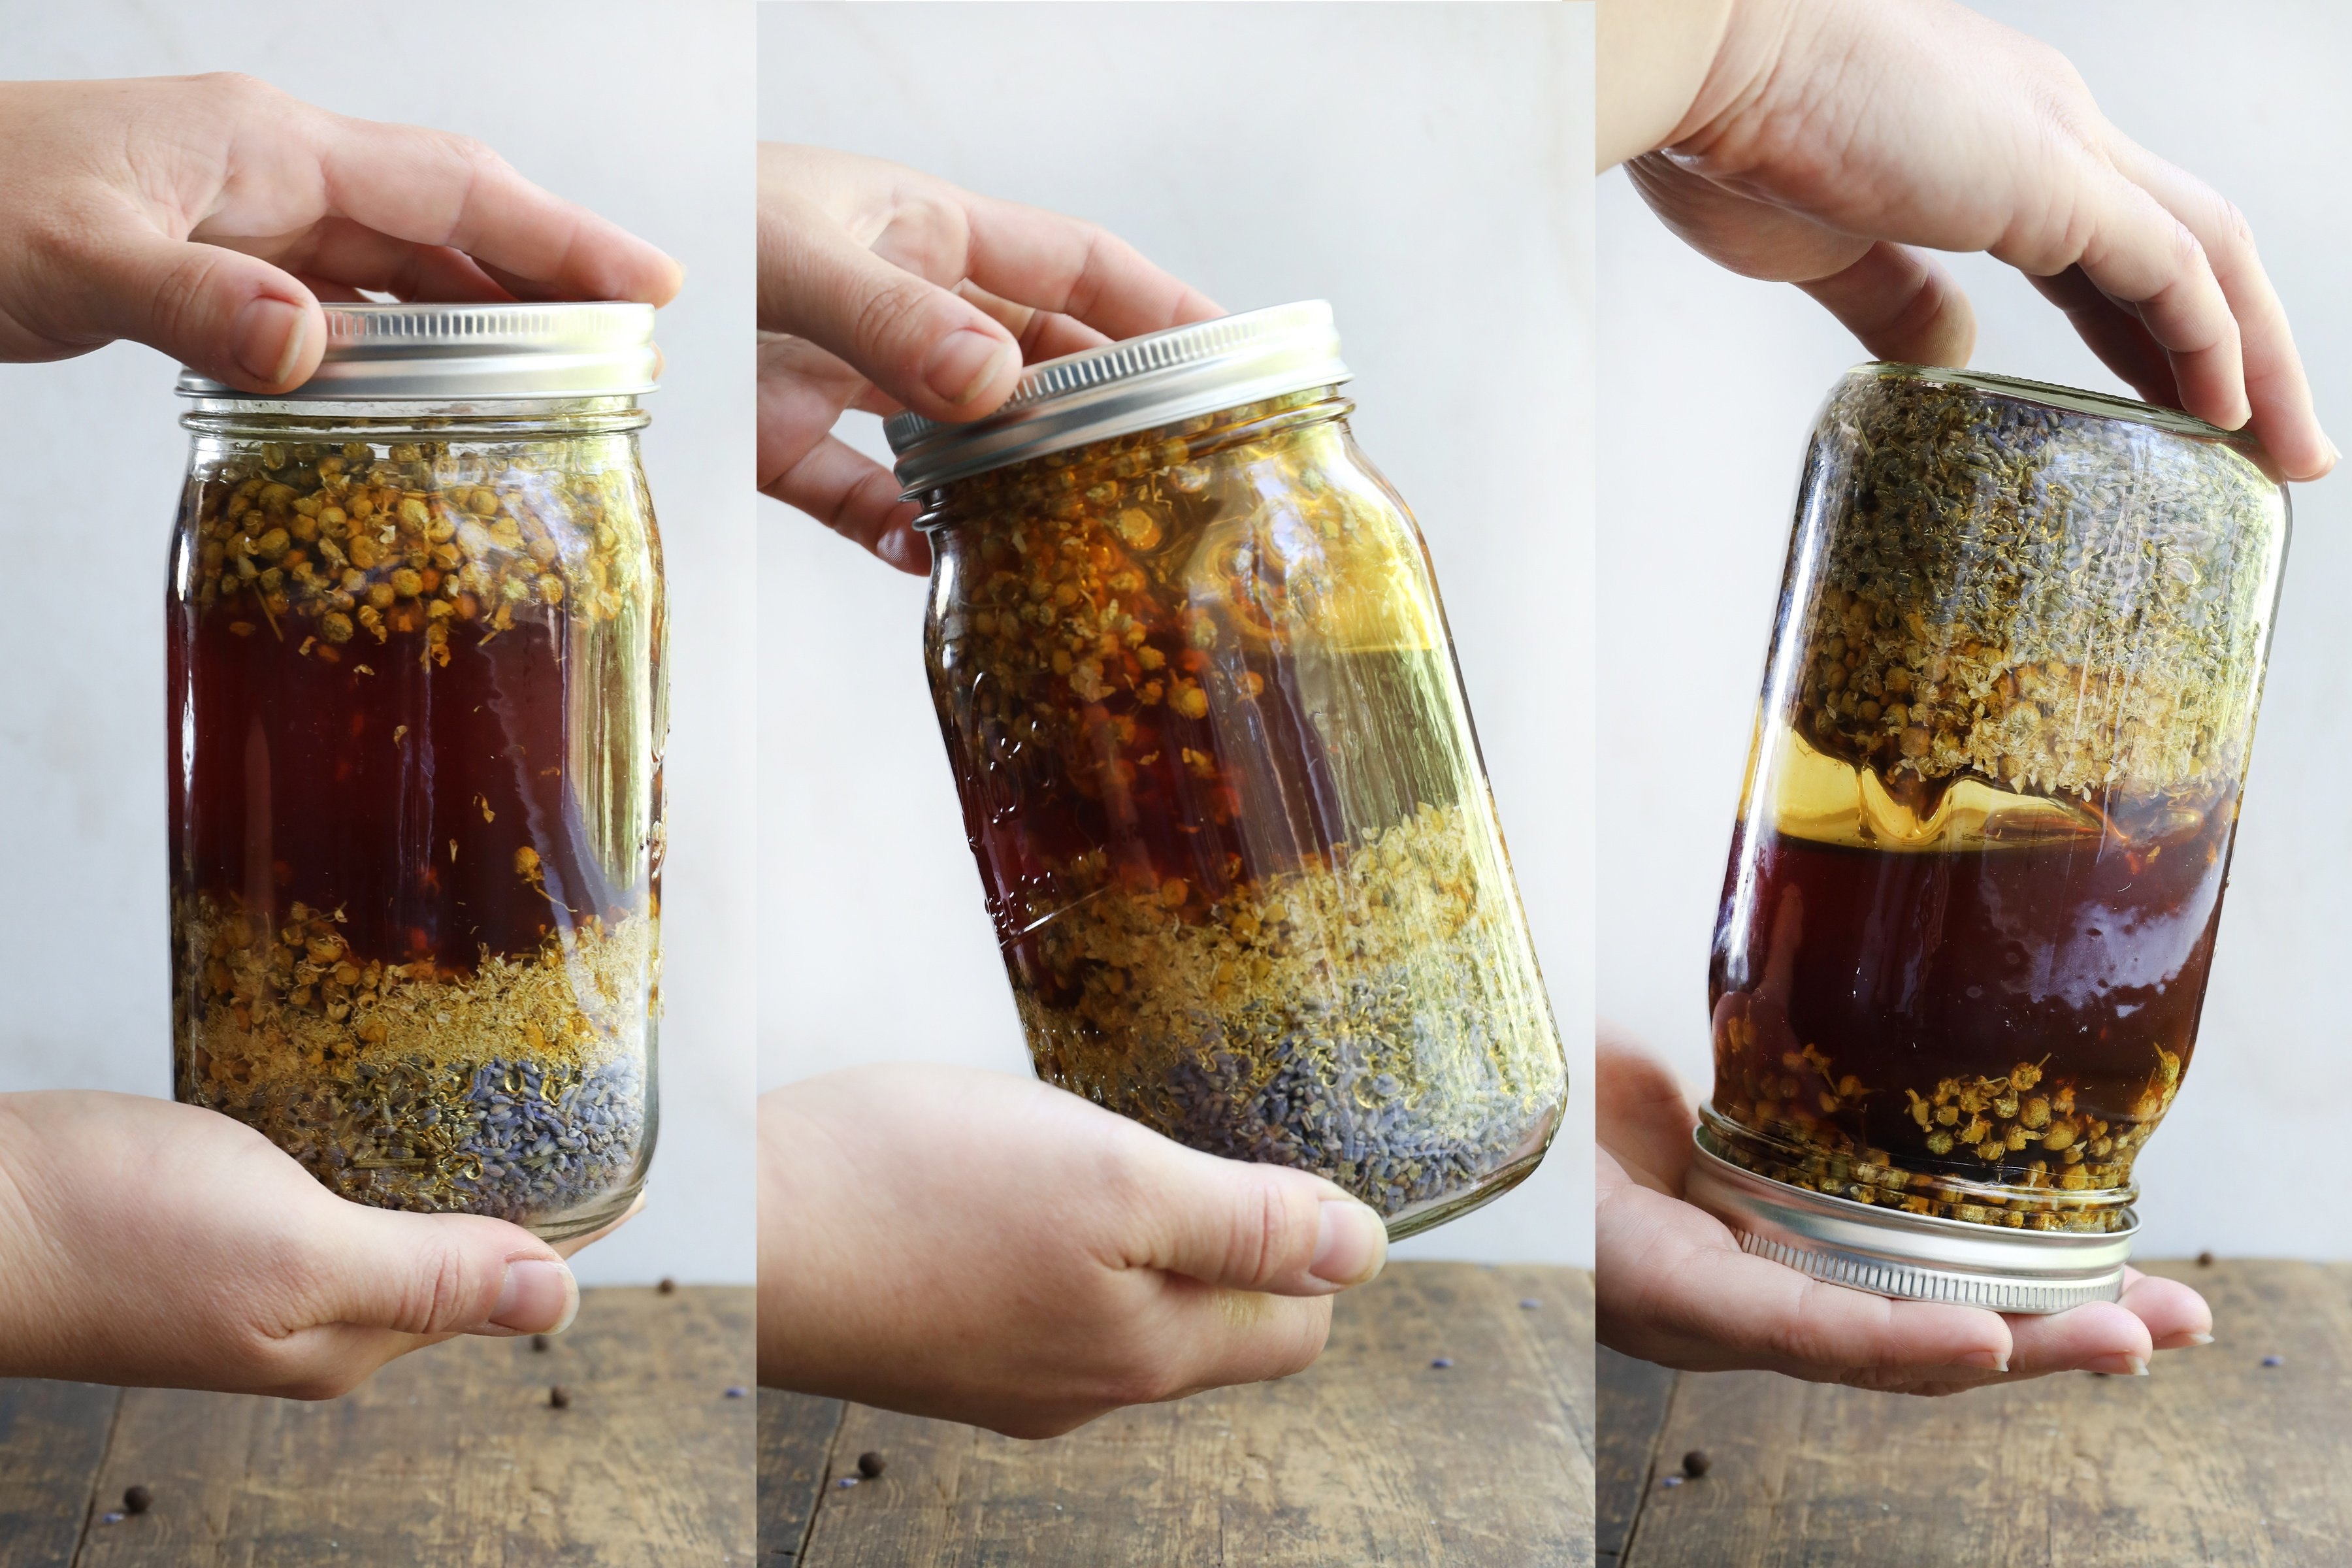 Hands flipping mason jar to mix honey and herbs